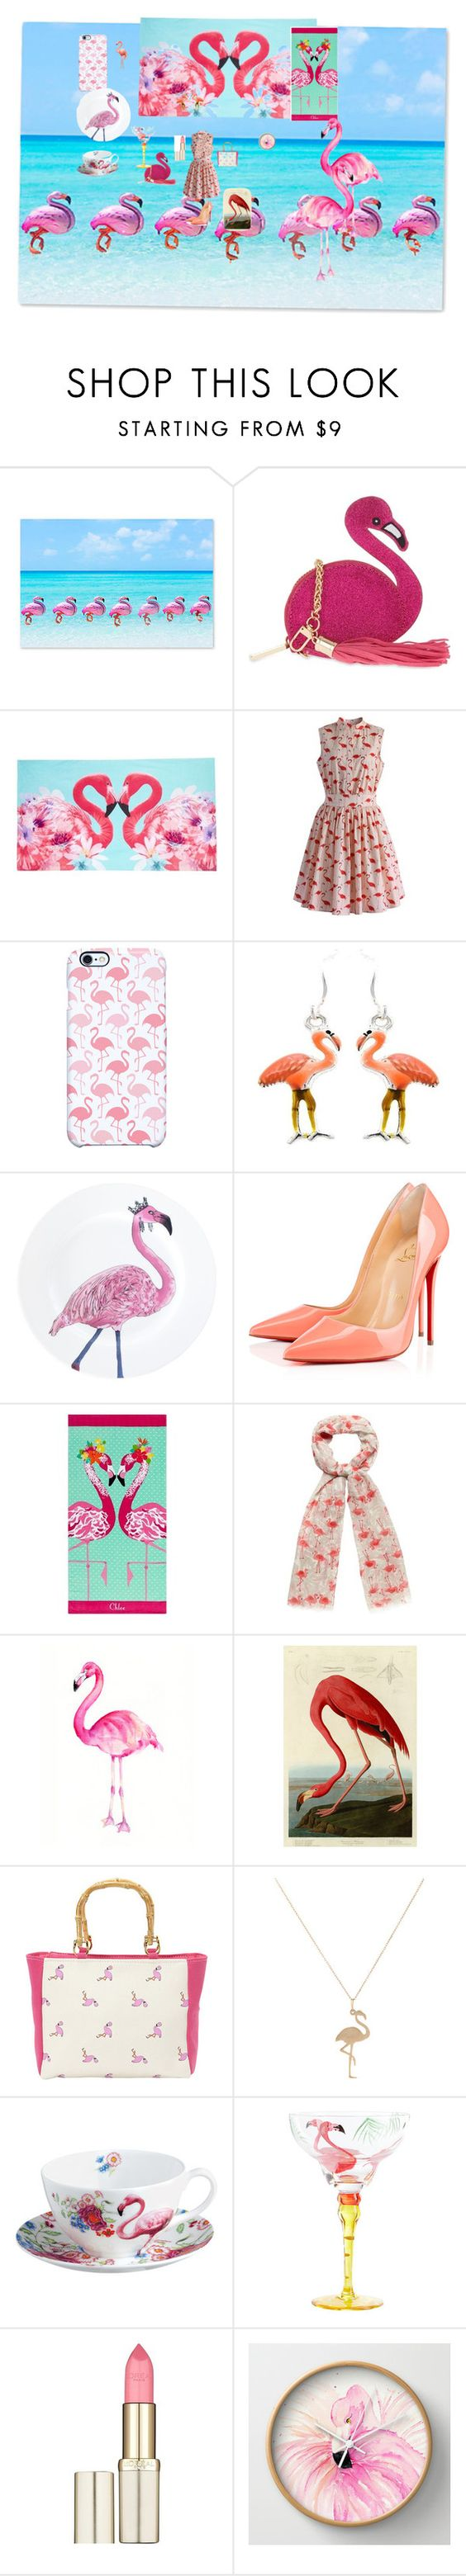 """Abriena flamingos"" by dewdrop587 ❤ liked on Polyvore featuring Gray Malin, Skinnydip, Matthew Williamson, Chicwish, Uncommon, Christian Louboutin, PBteen, Red Herring, Dot & Bo and Magid"